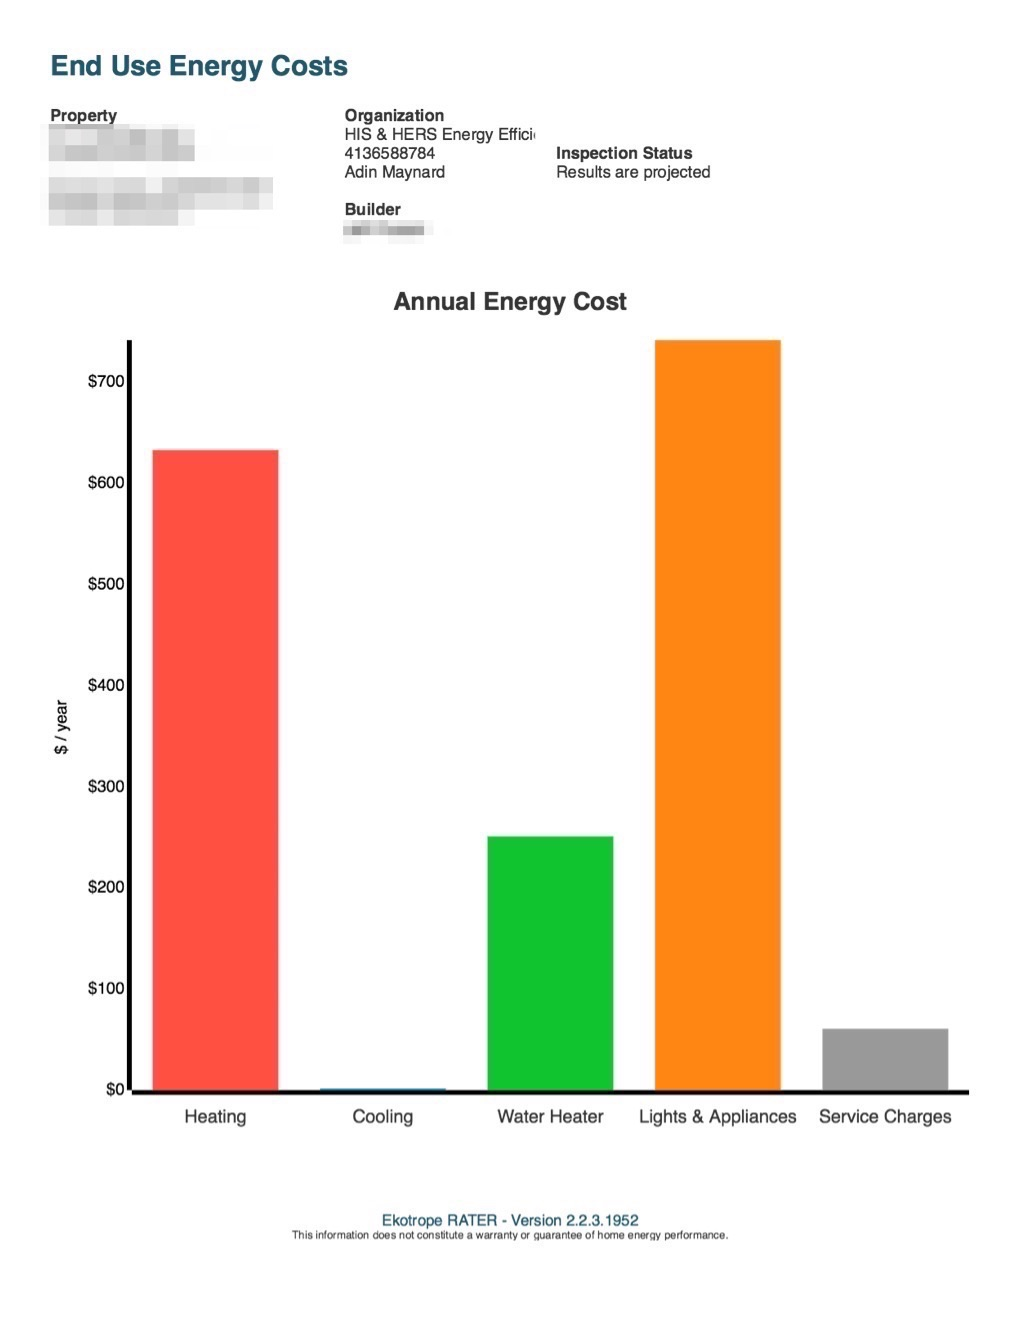 Annual Energy Costs